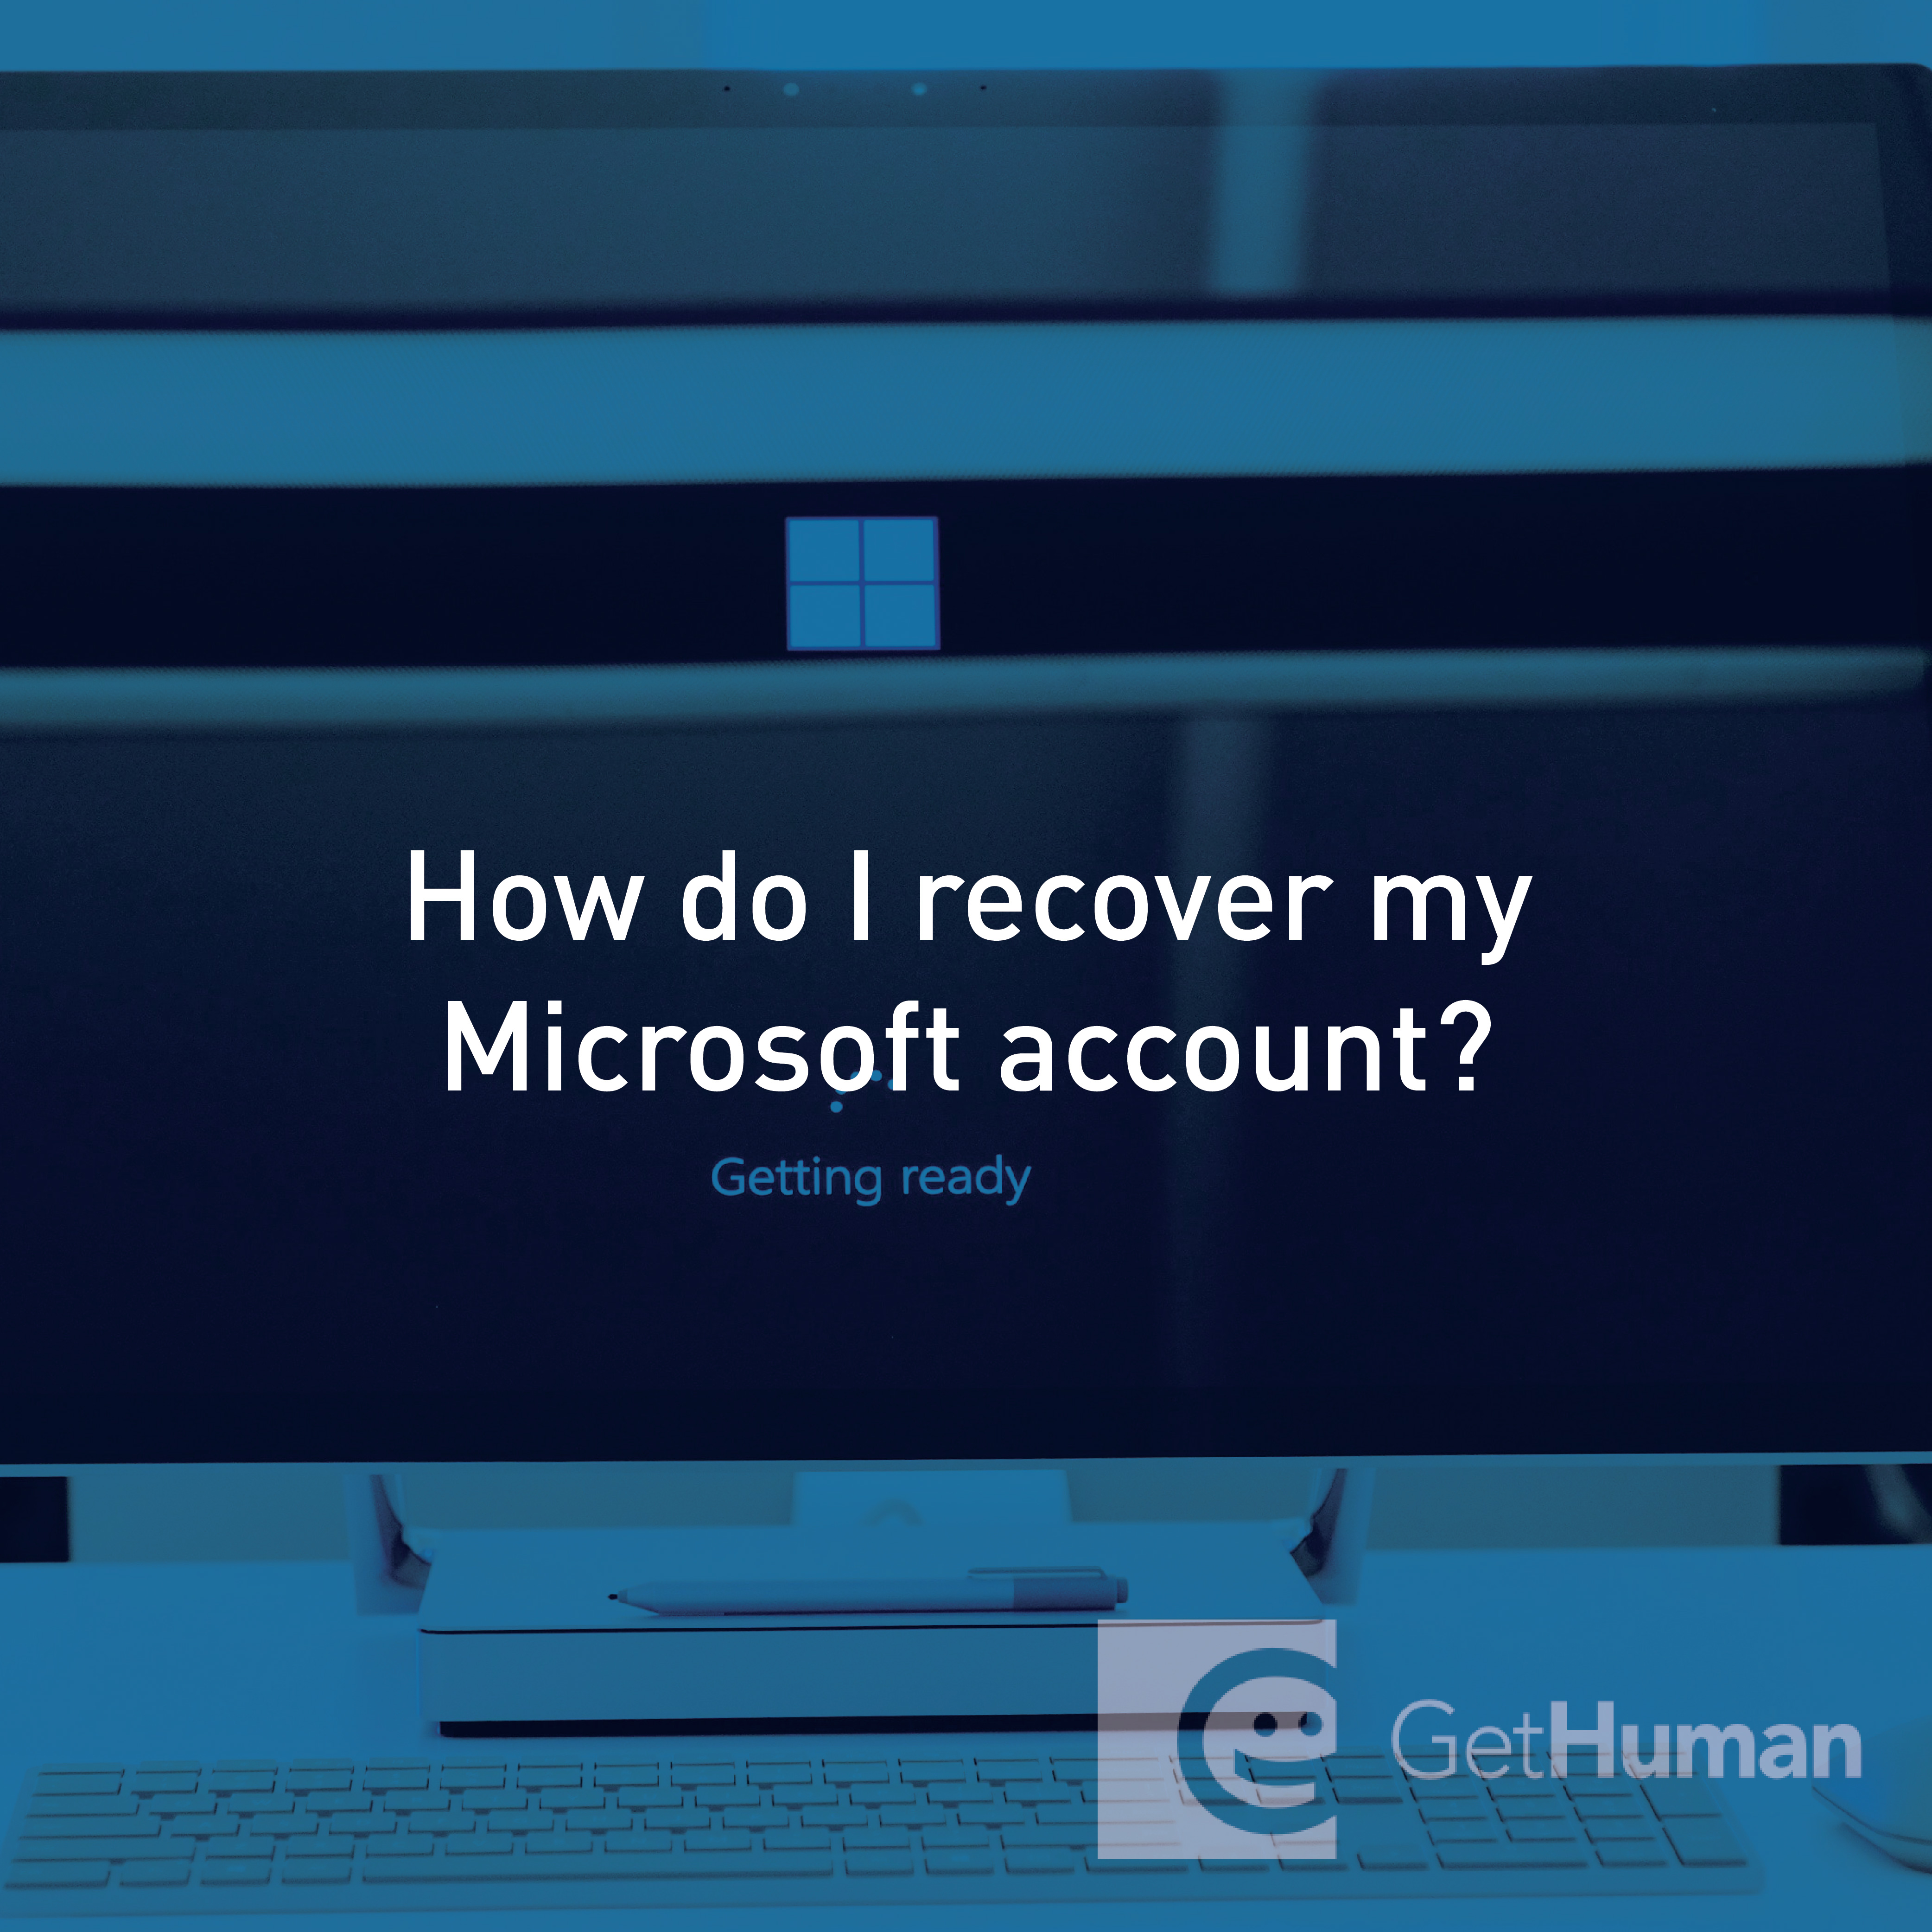 How do I recover my Microsoft account?